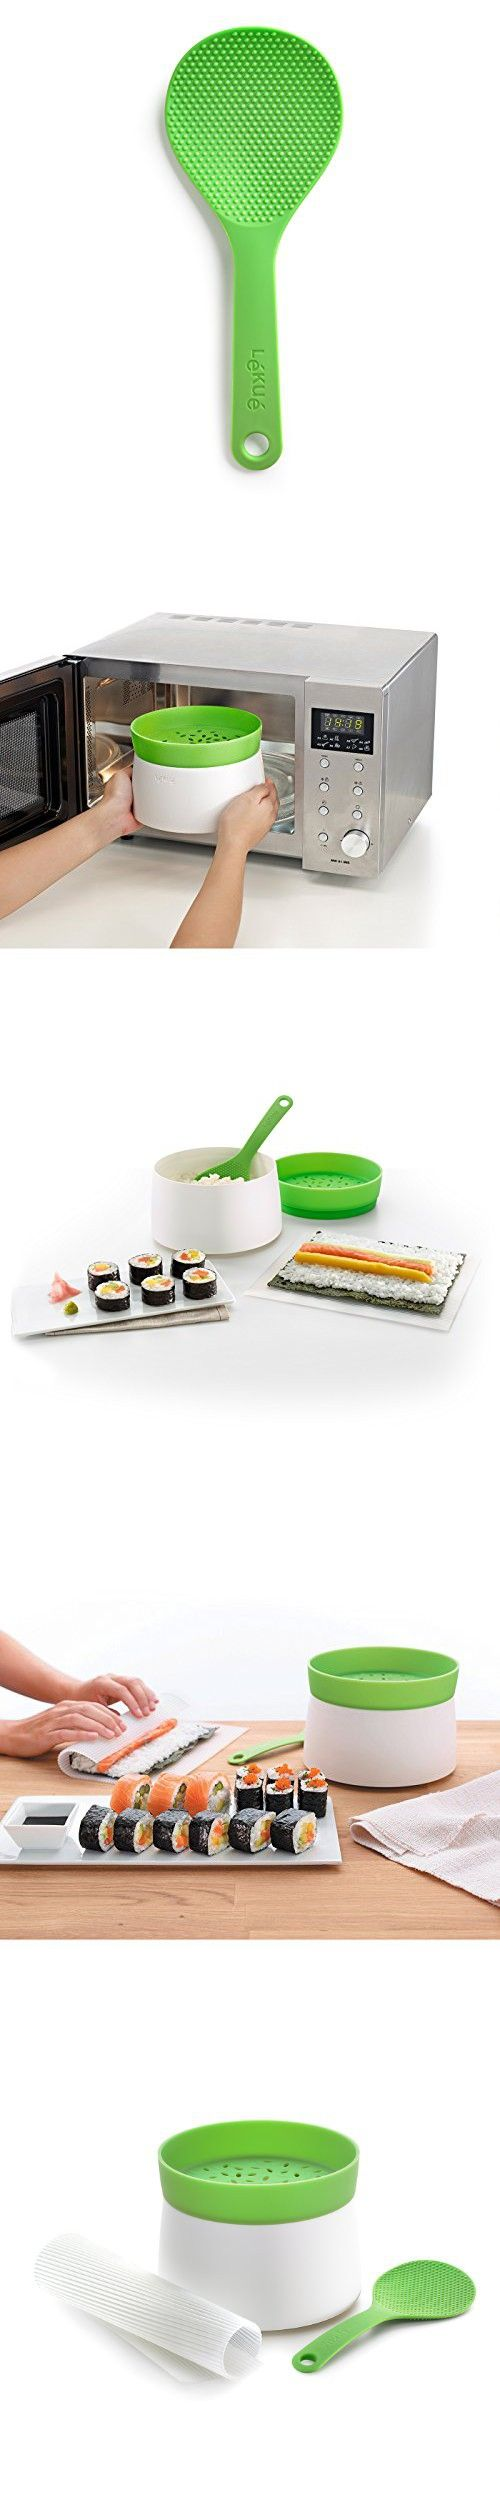 Lekue Kit Sushi Rice Microwave Steamer Maker 3427